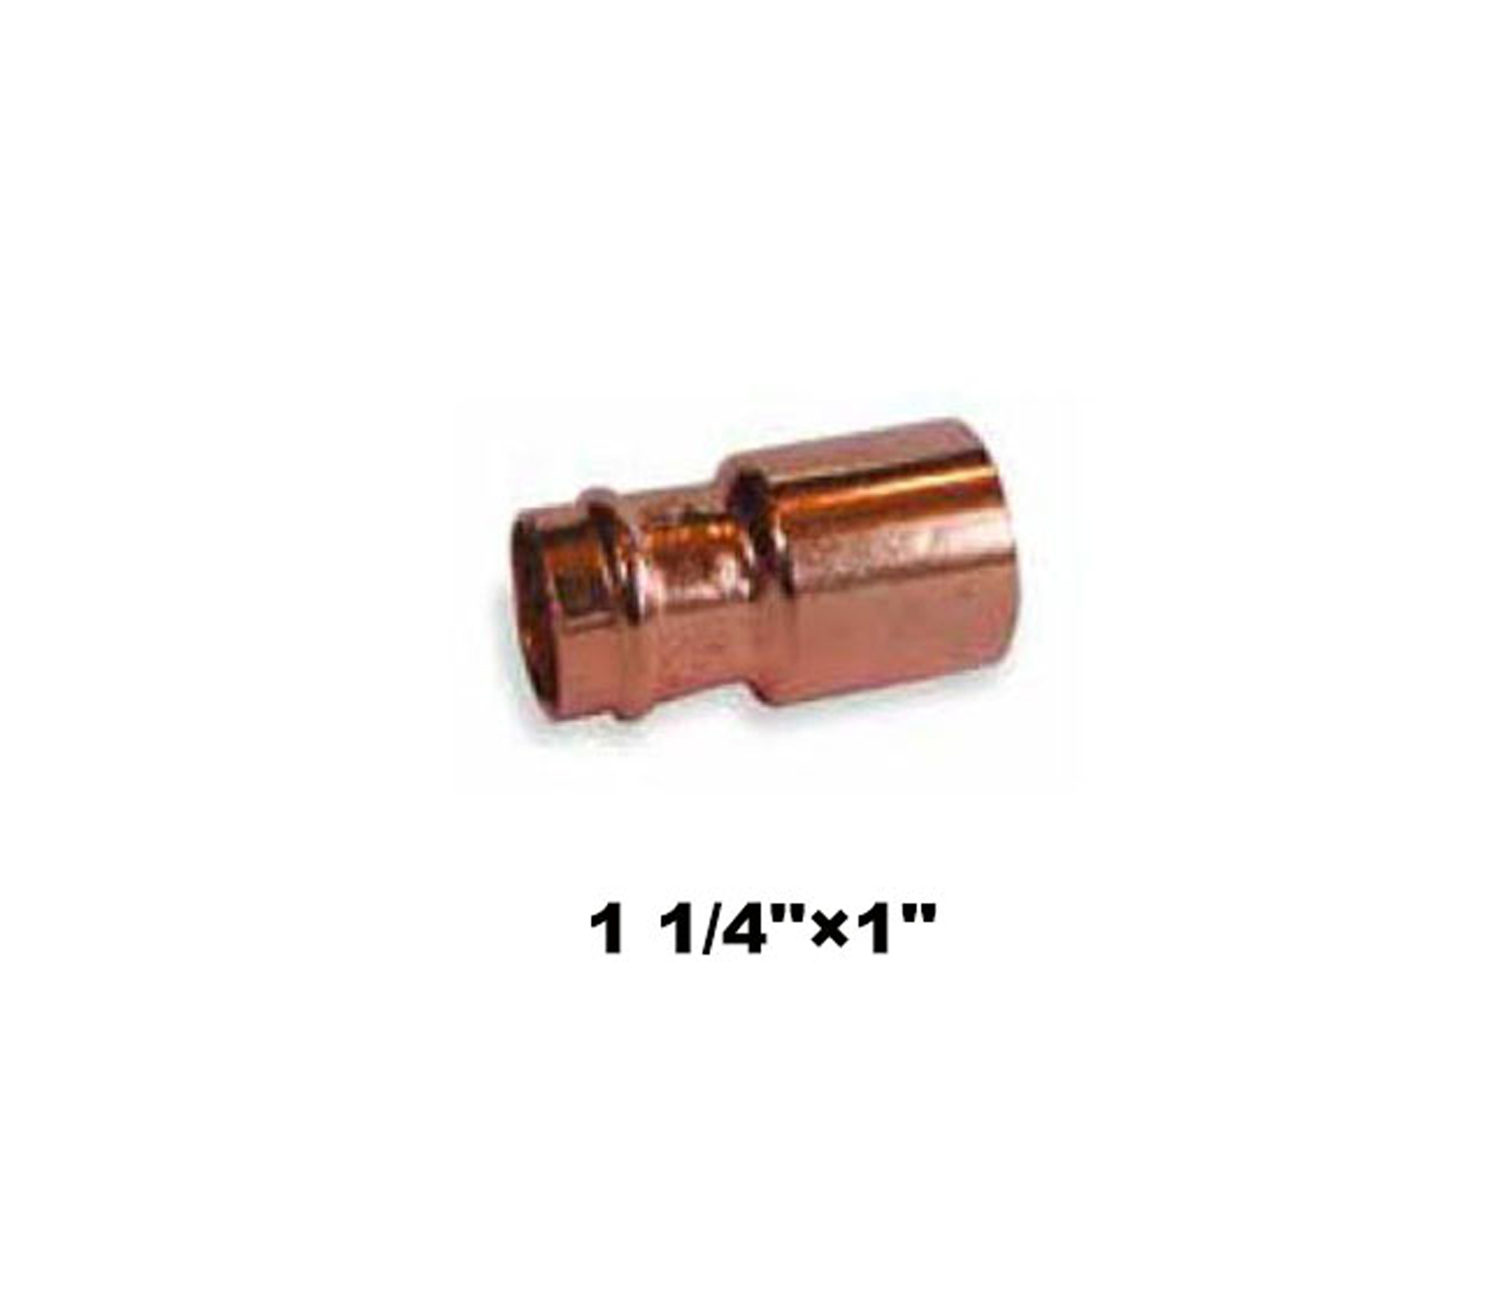 "Compression Fitting Reducer 1 1/4""×1"" (19043)"